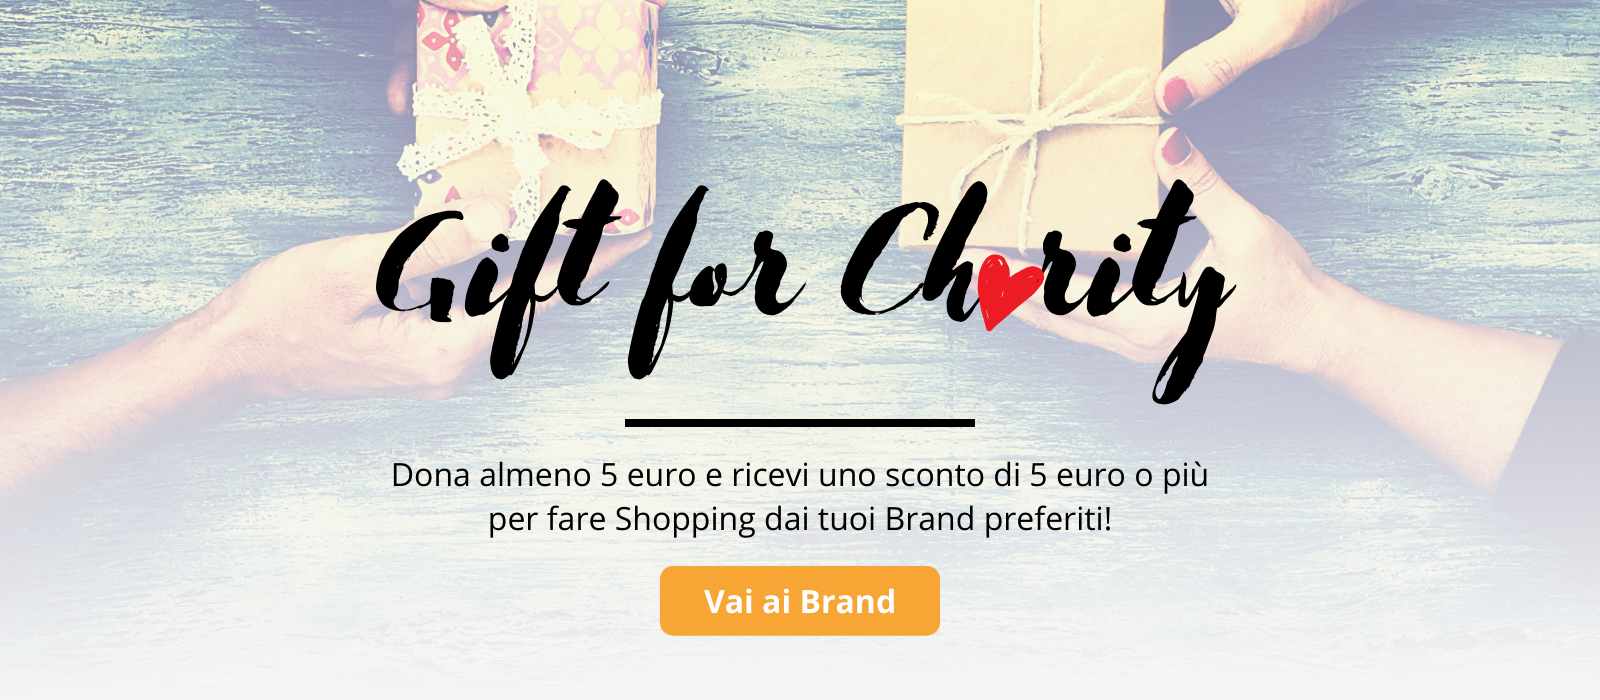 Gift for Charity_home page